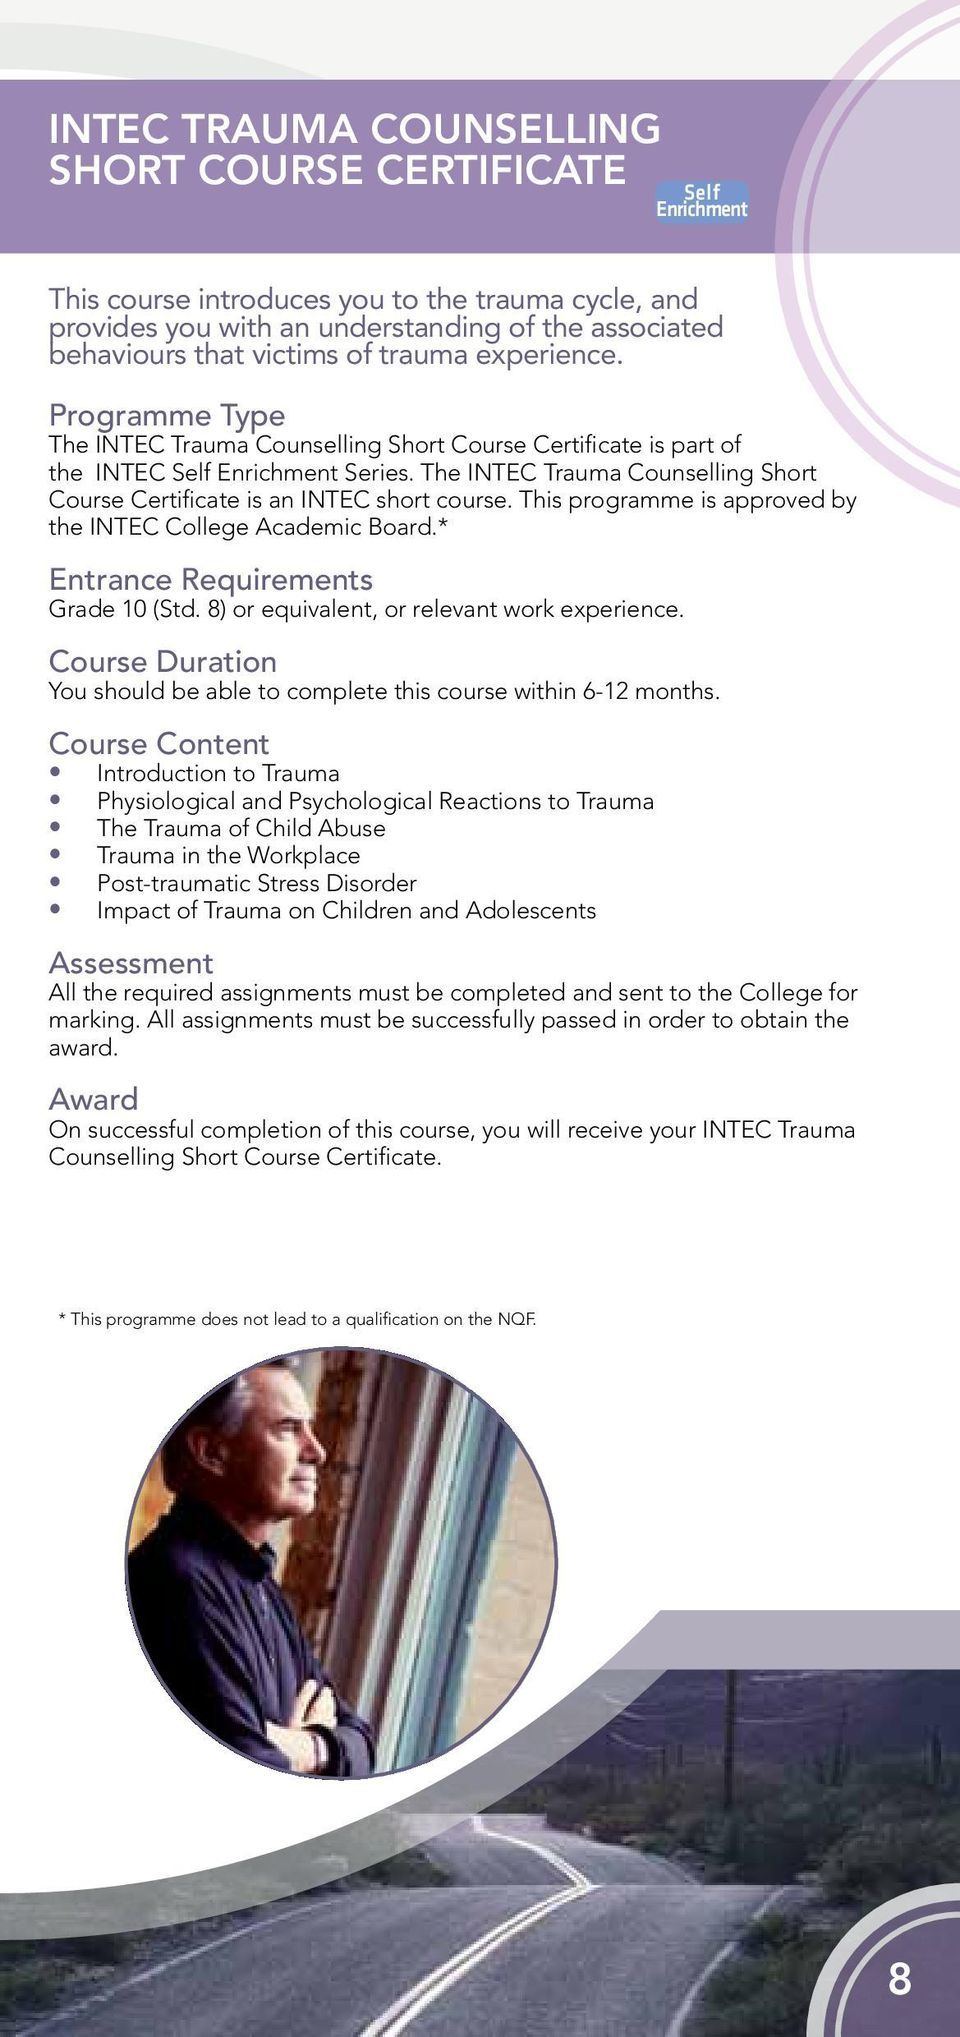 This programme is approved by the INTEC College Academic Board.* Entrance Requirements Grade 10 (Std. 8) or equivalent, or relevant work experience.